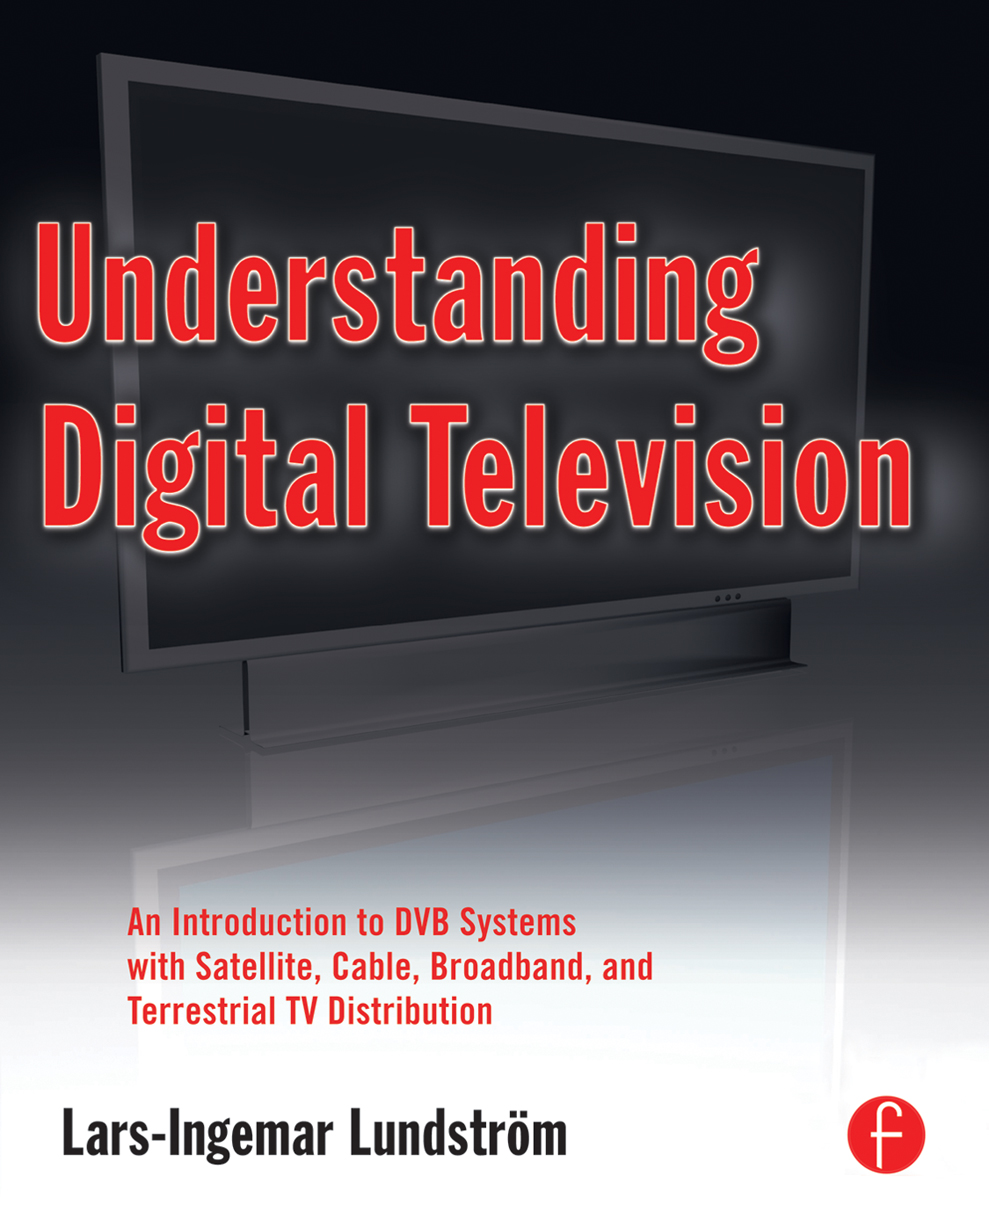 Understanding Digital Television An Introduction to DVB Systems with Satellite,  Cable,  Broadband and Terrestrial TV Distribution